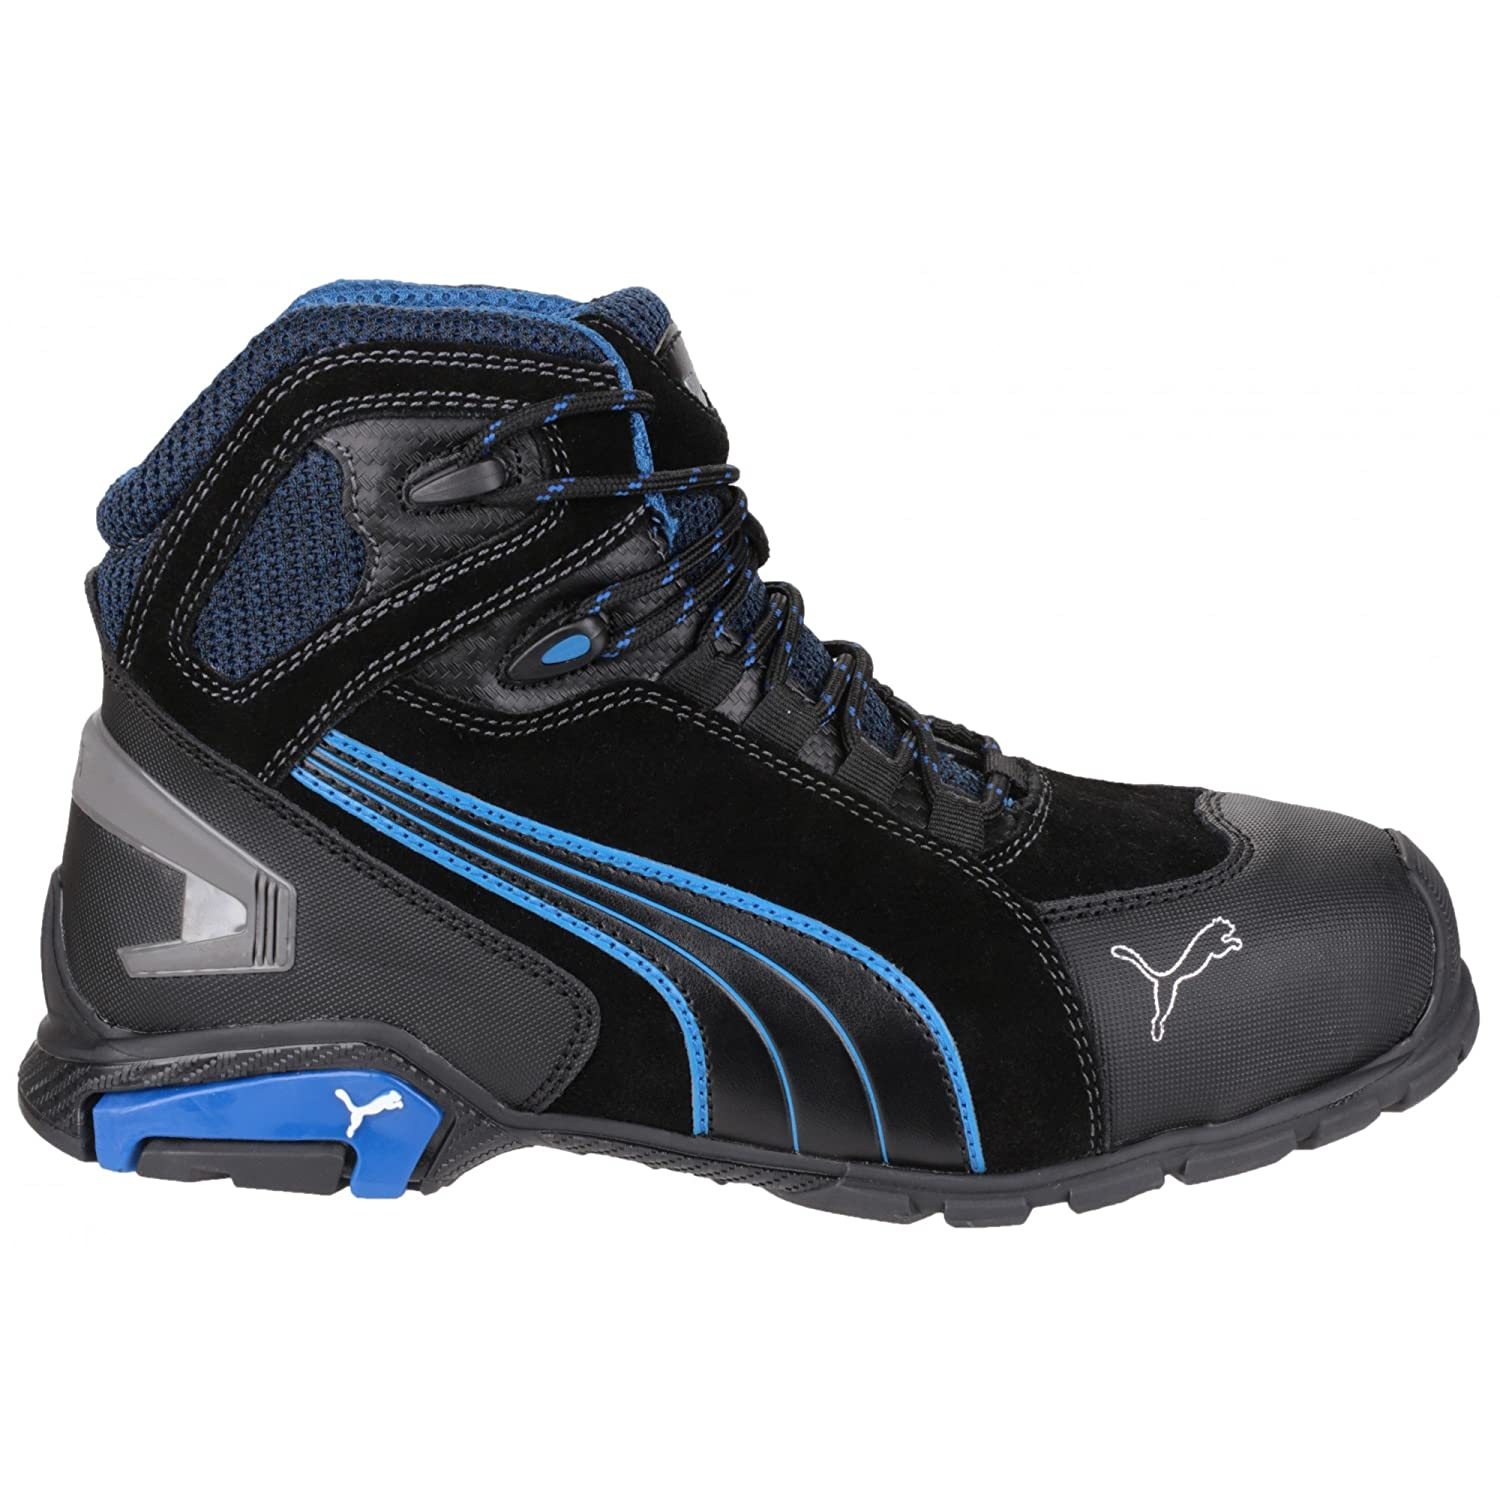 6b6a1cbe22d7fb puma goodyear shoes